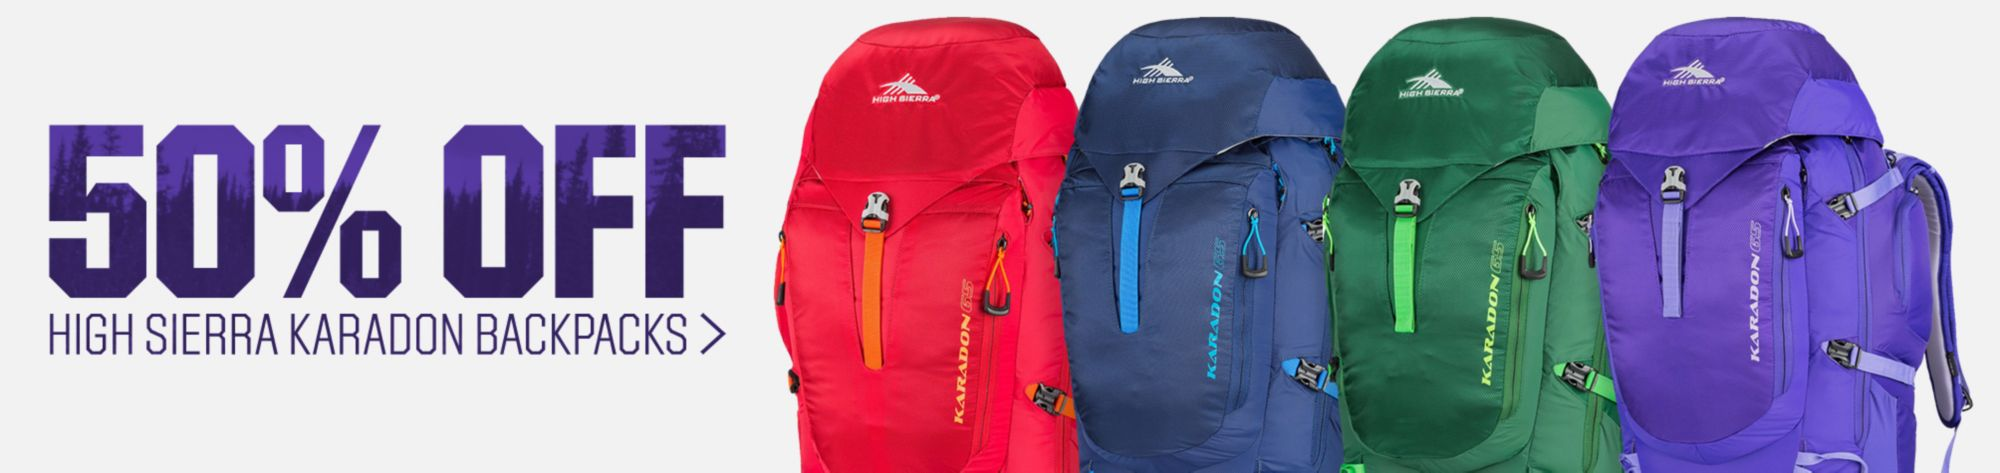 50% Off High Sierra Karadon Backpacks